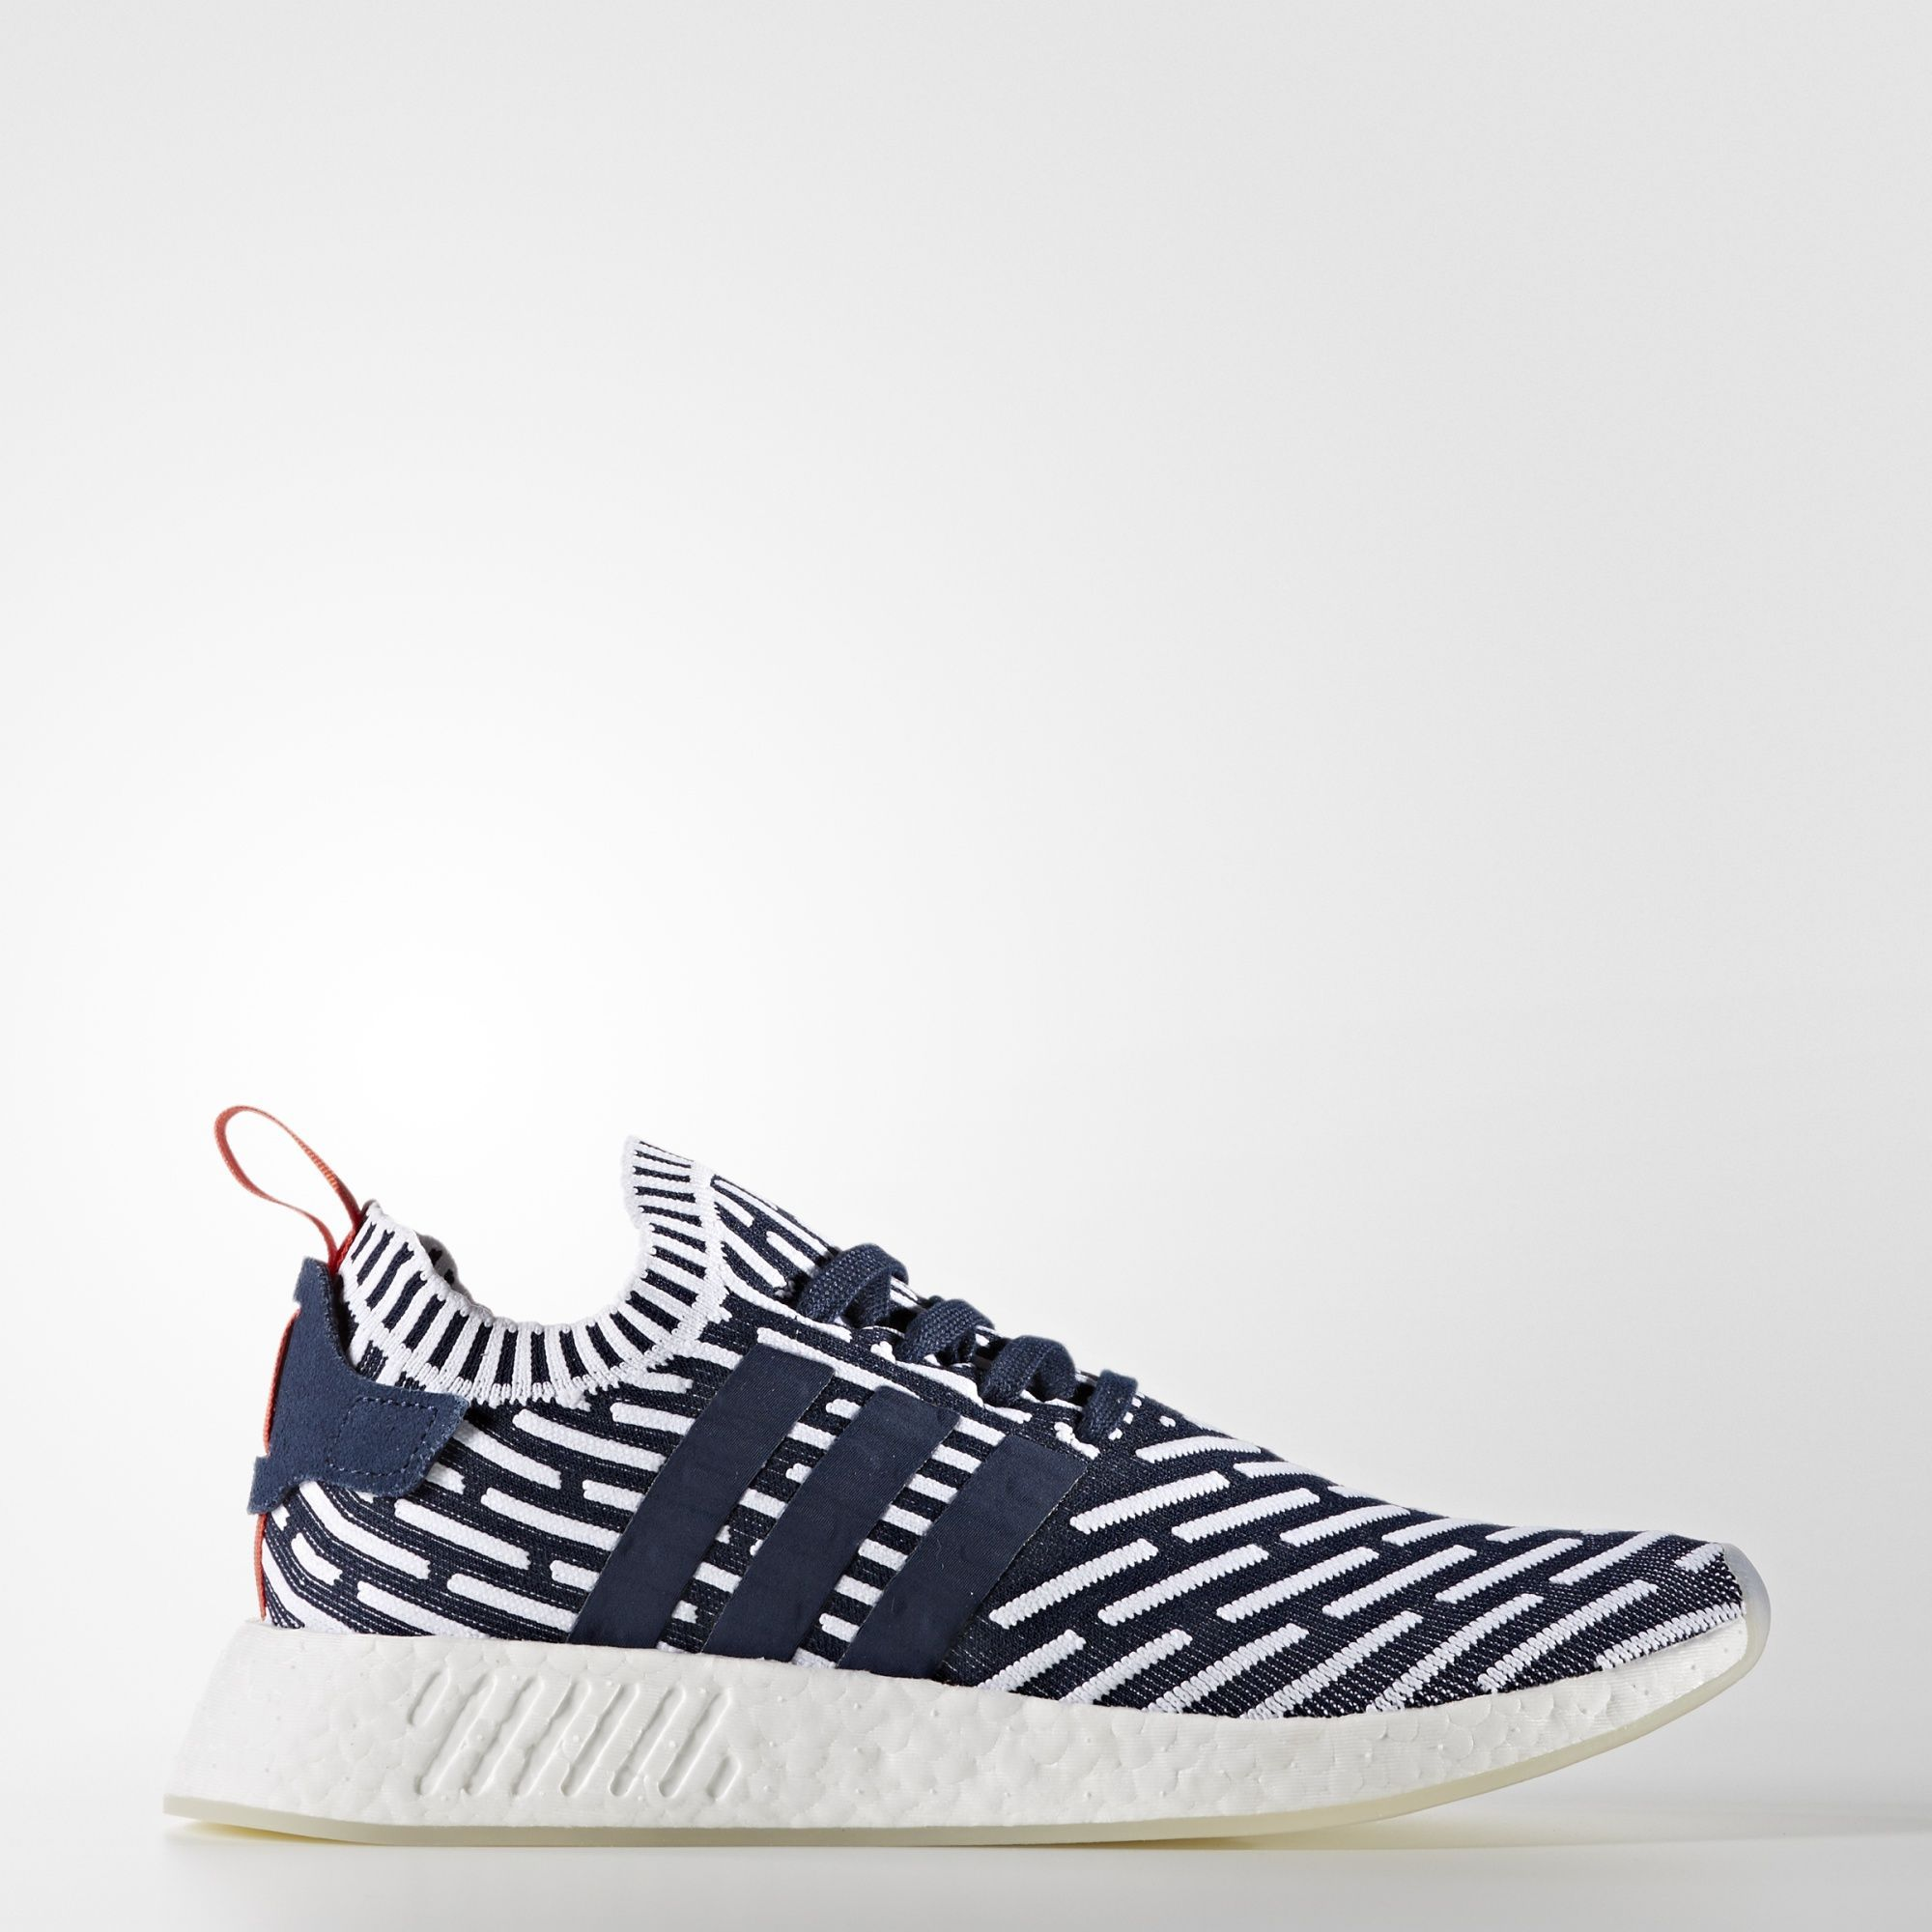 NMD R2 Primeknit Shoes | adidas US